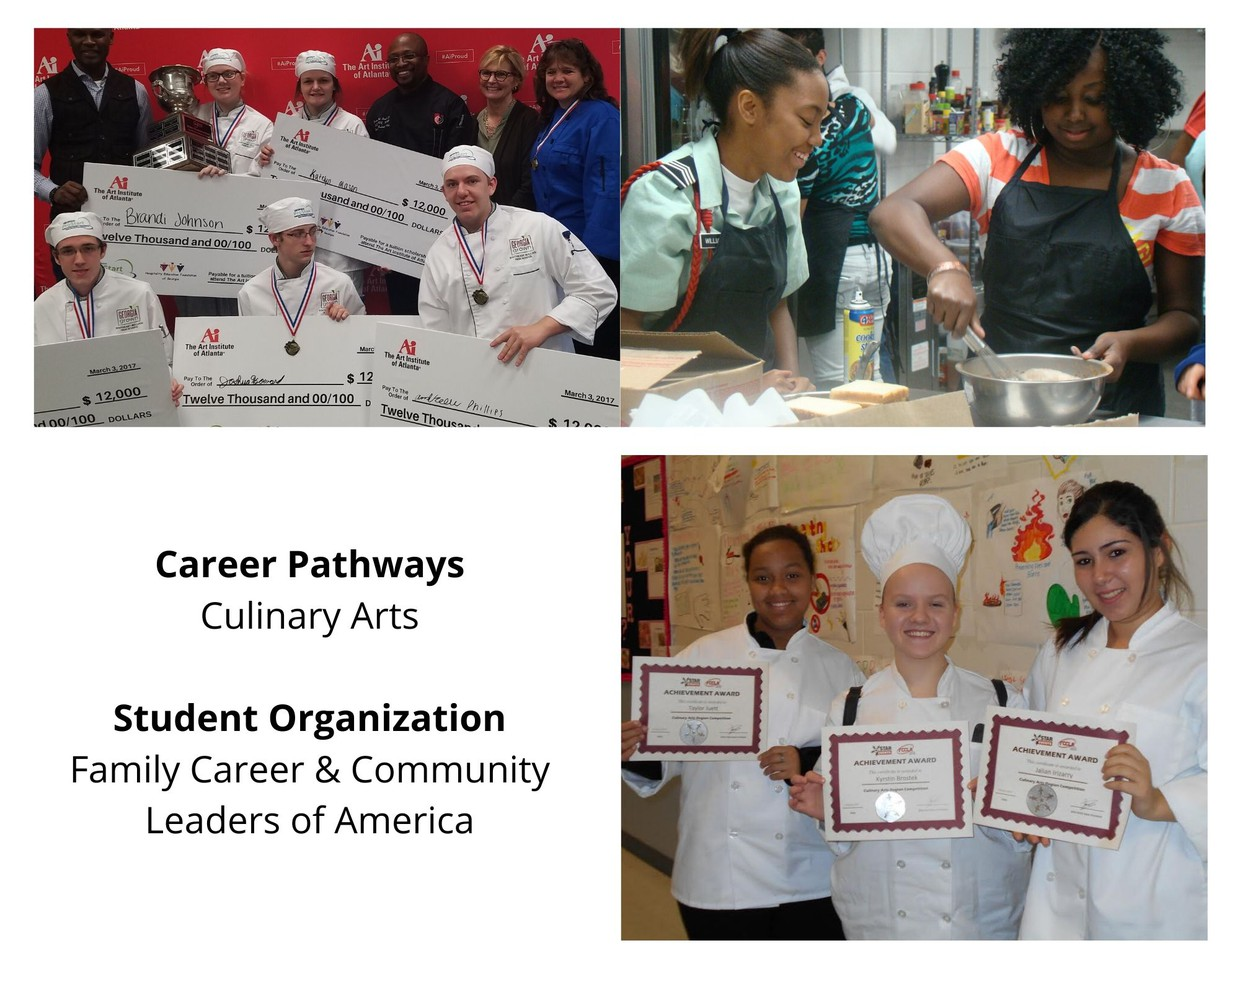 Culinary Arts career pathway photo collage